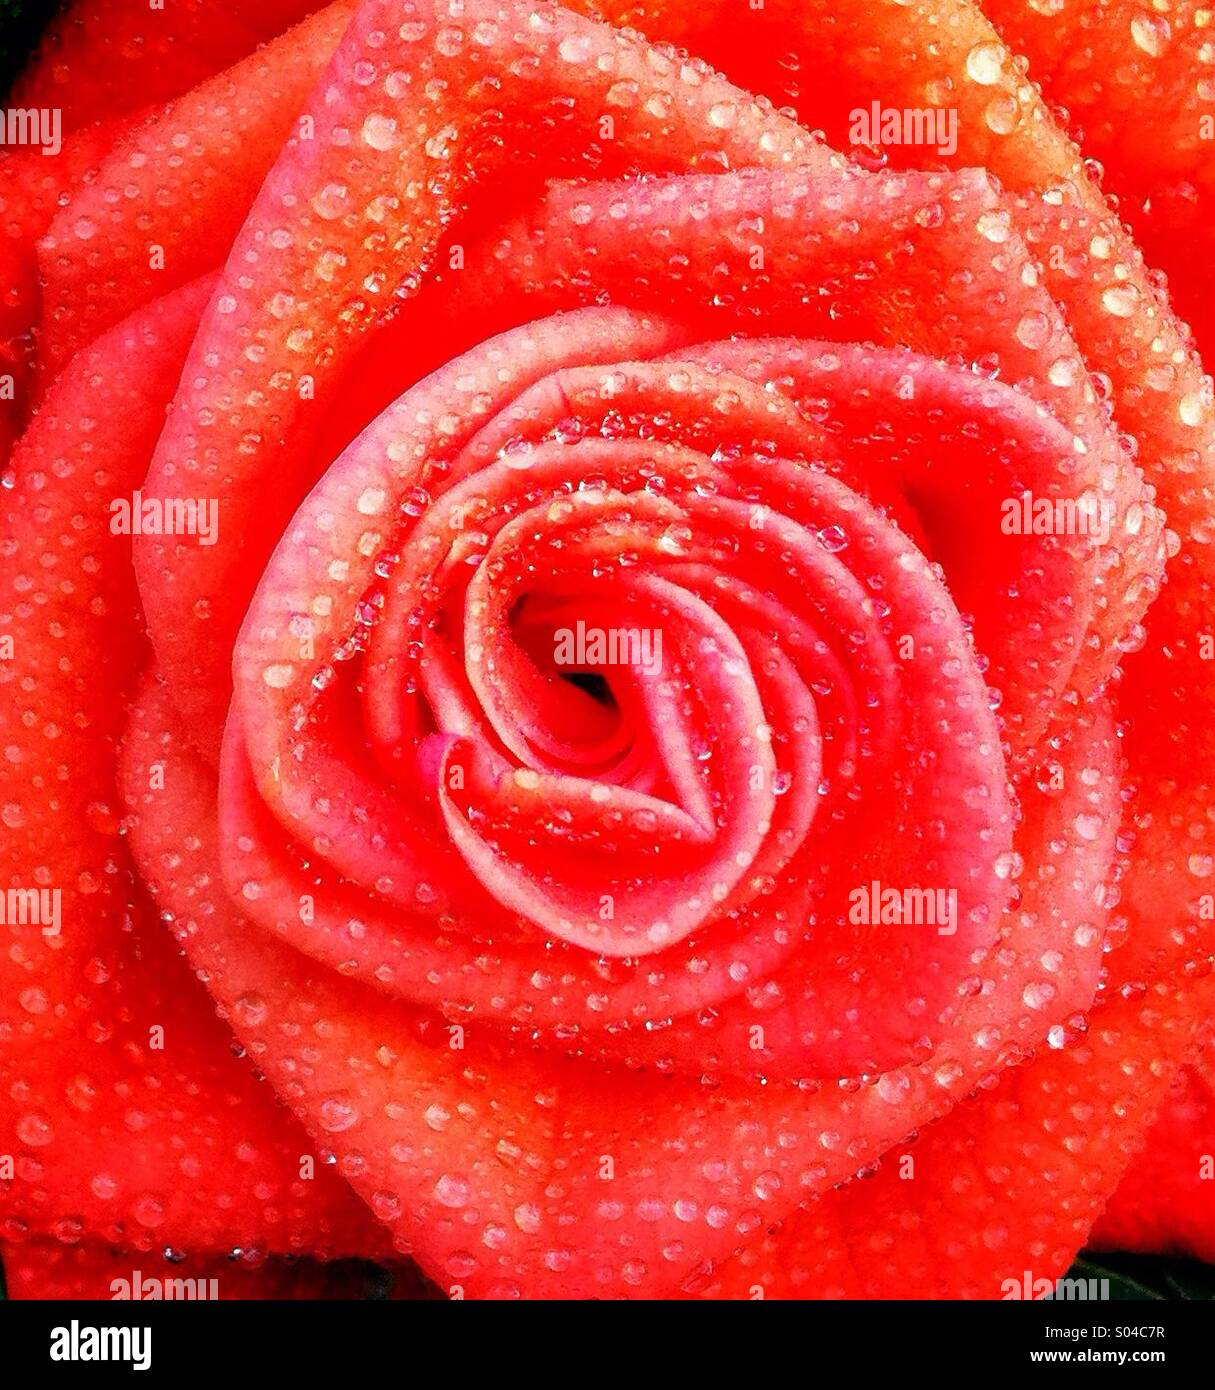 Rose - Stock Image